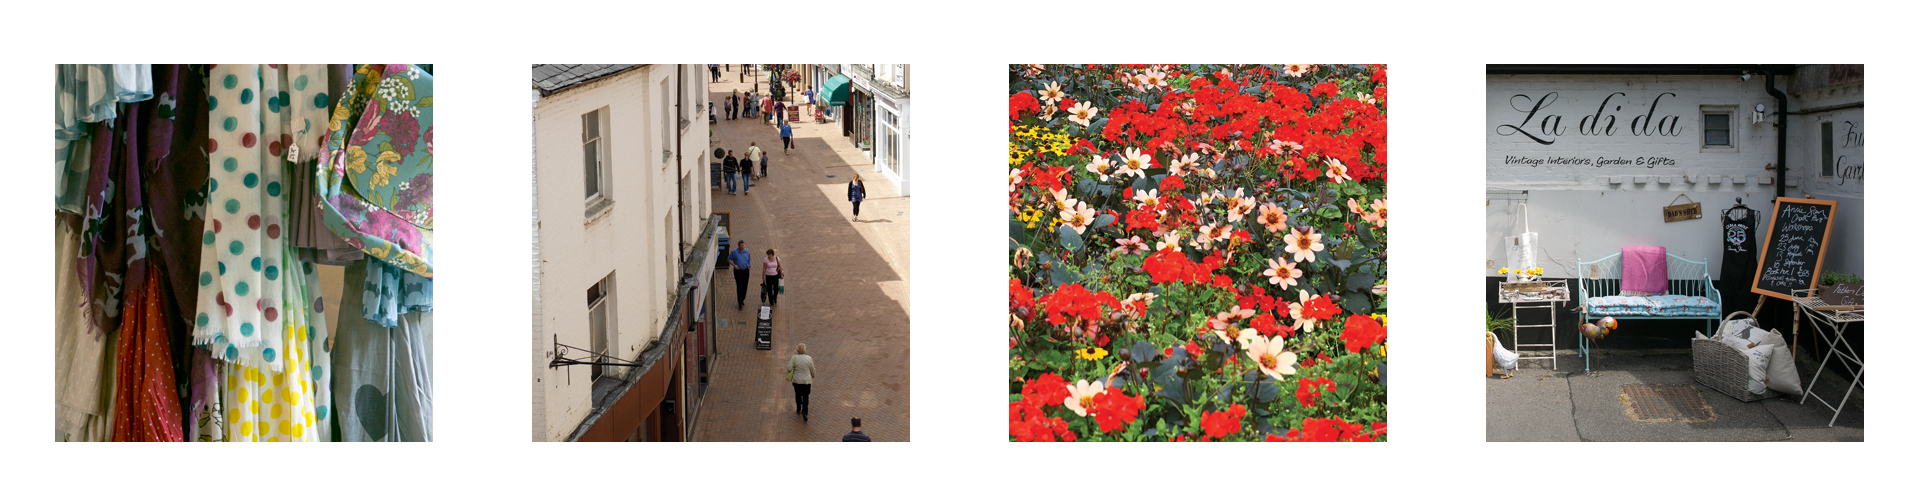 Images depicting our work including street scenes, shops and floral displays contributing to place making